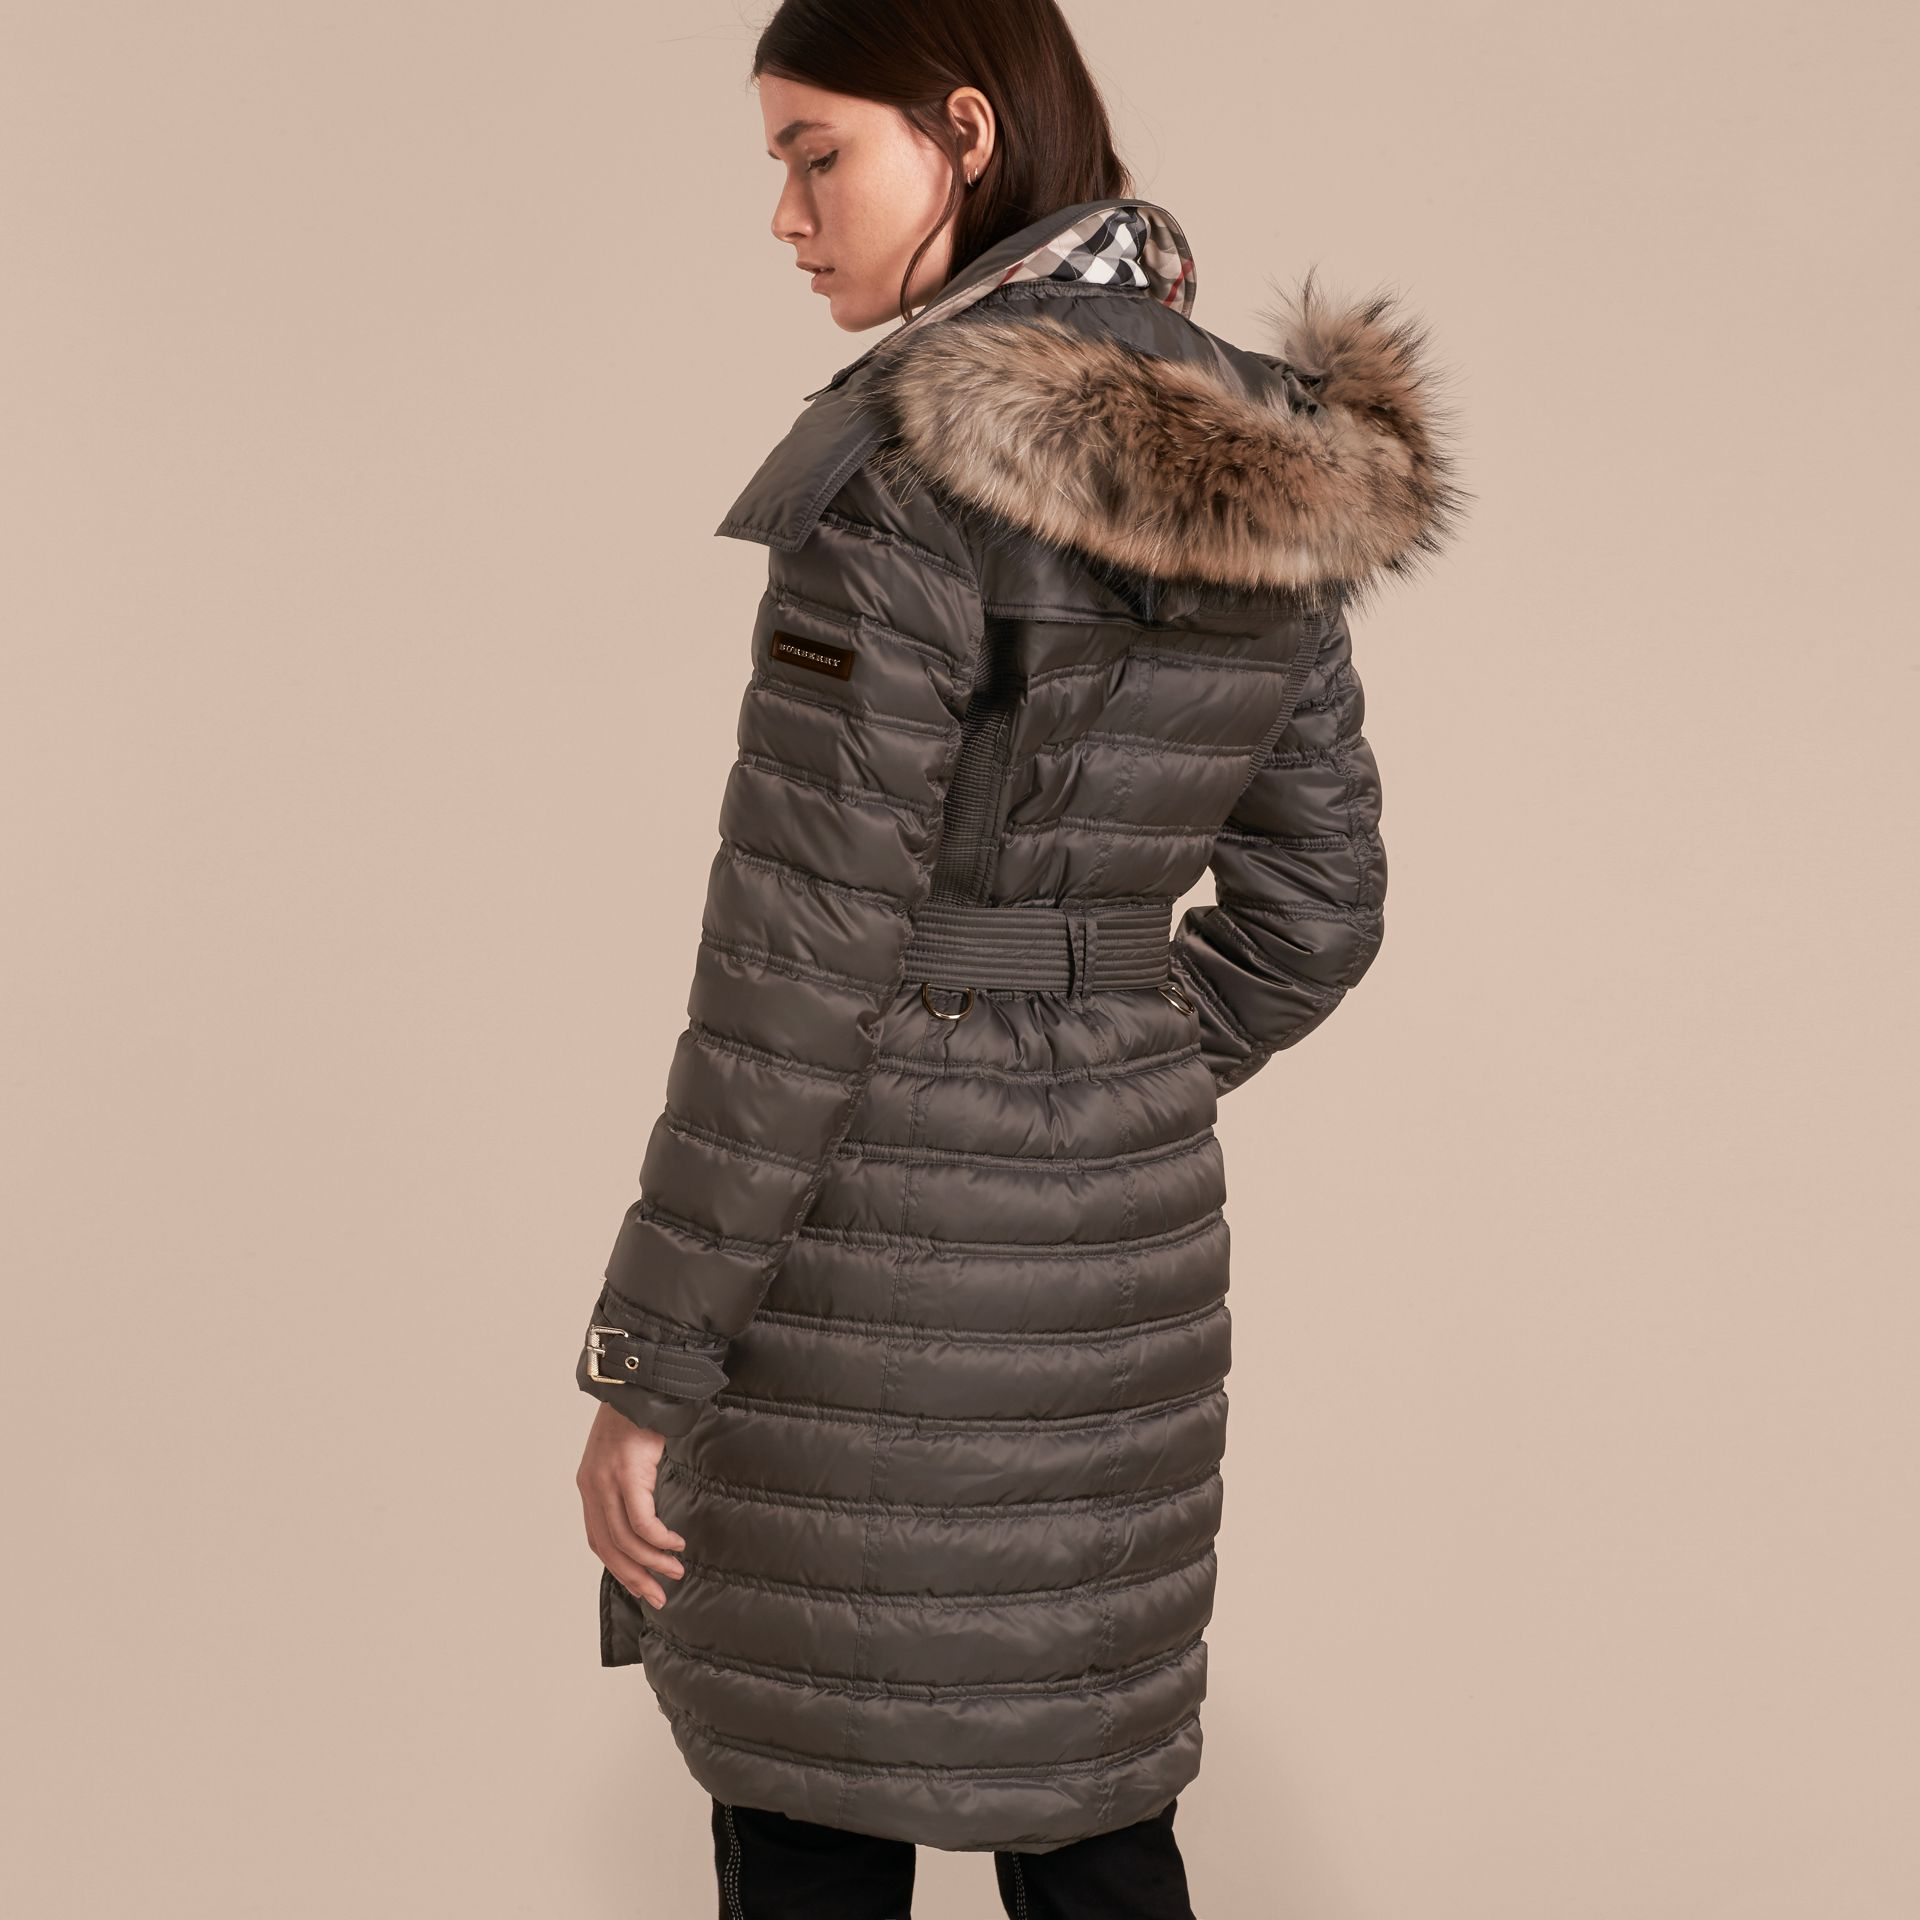 Mid grey Down-Filled Puffer Coat with Fur Trim Mid Grey - gallery image 3